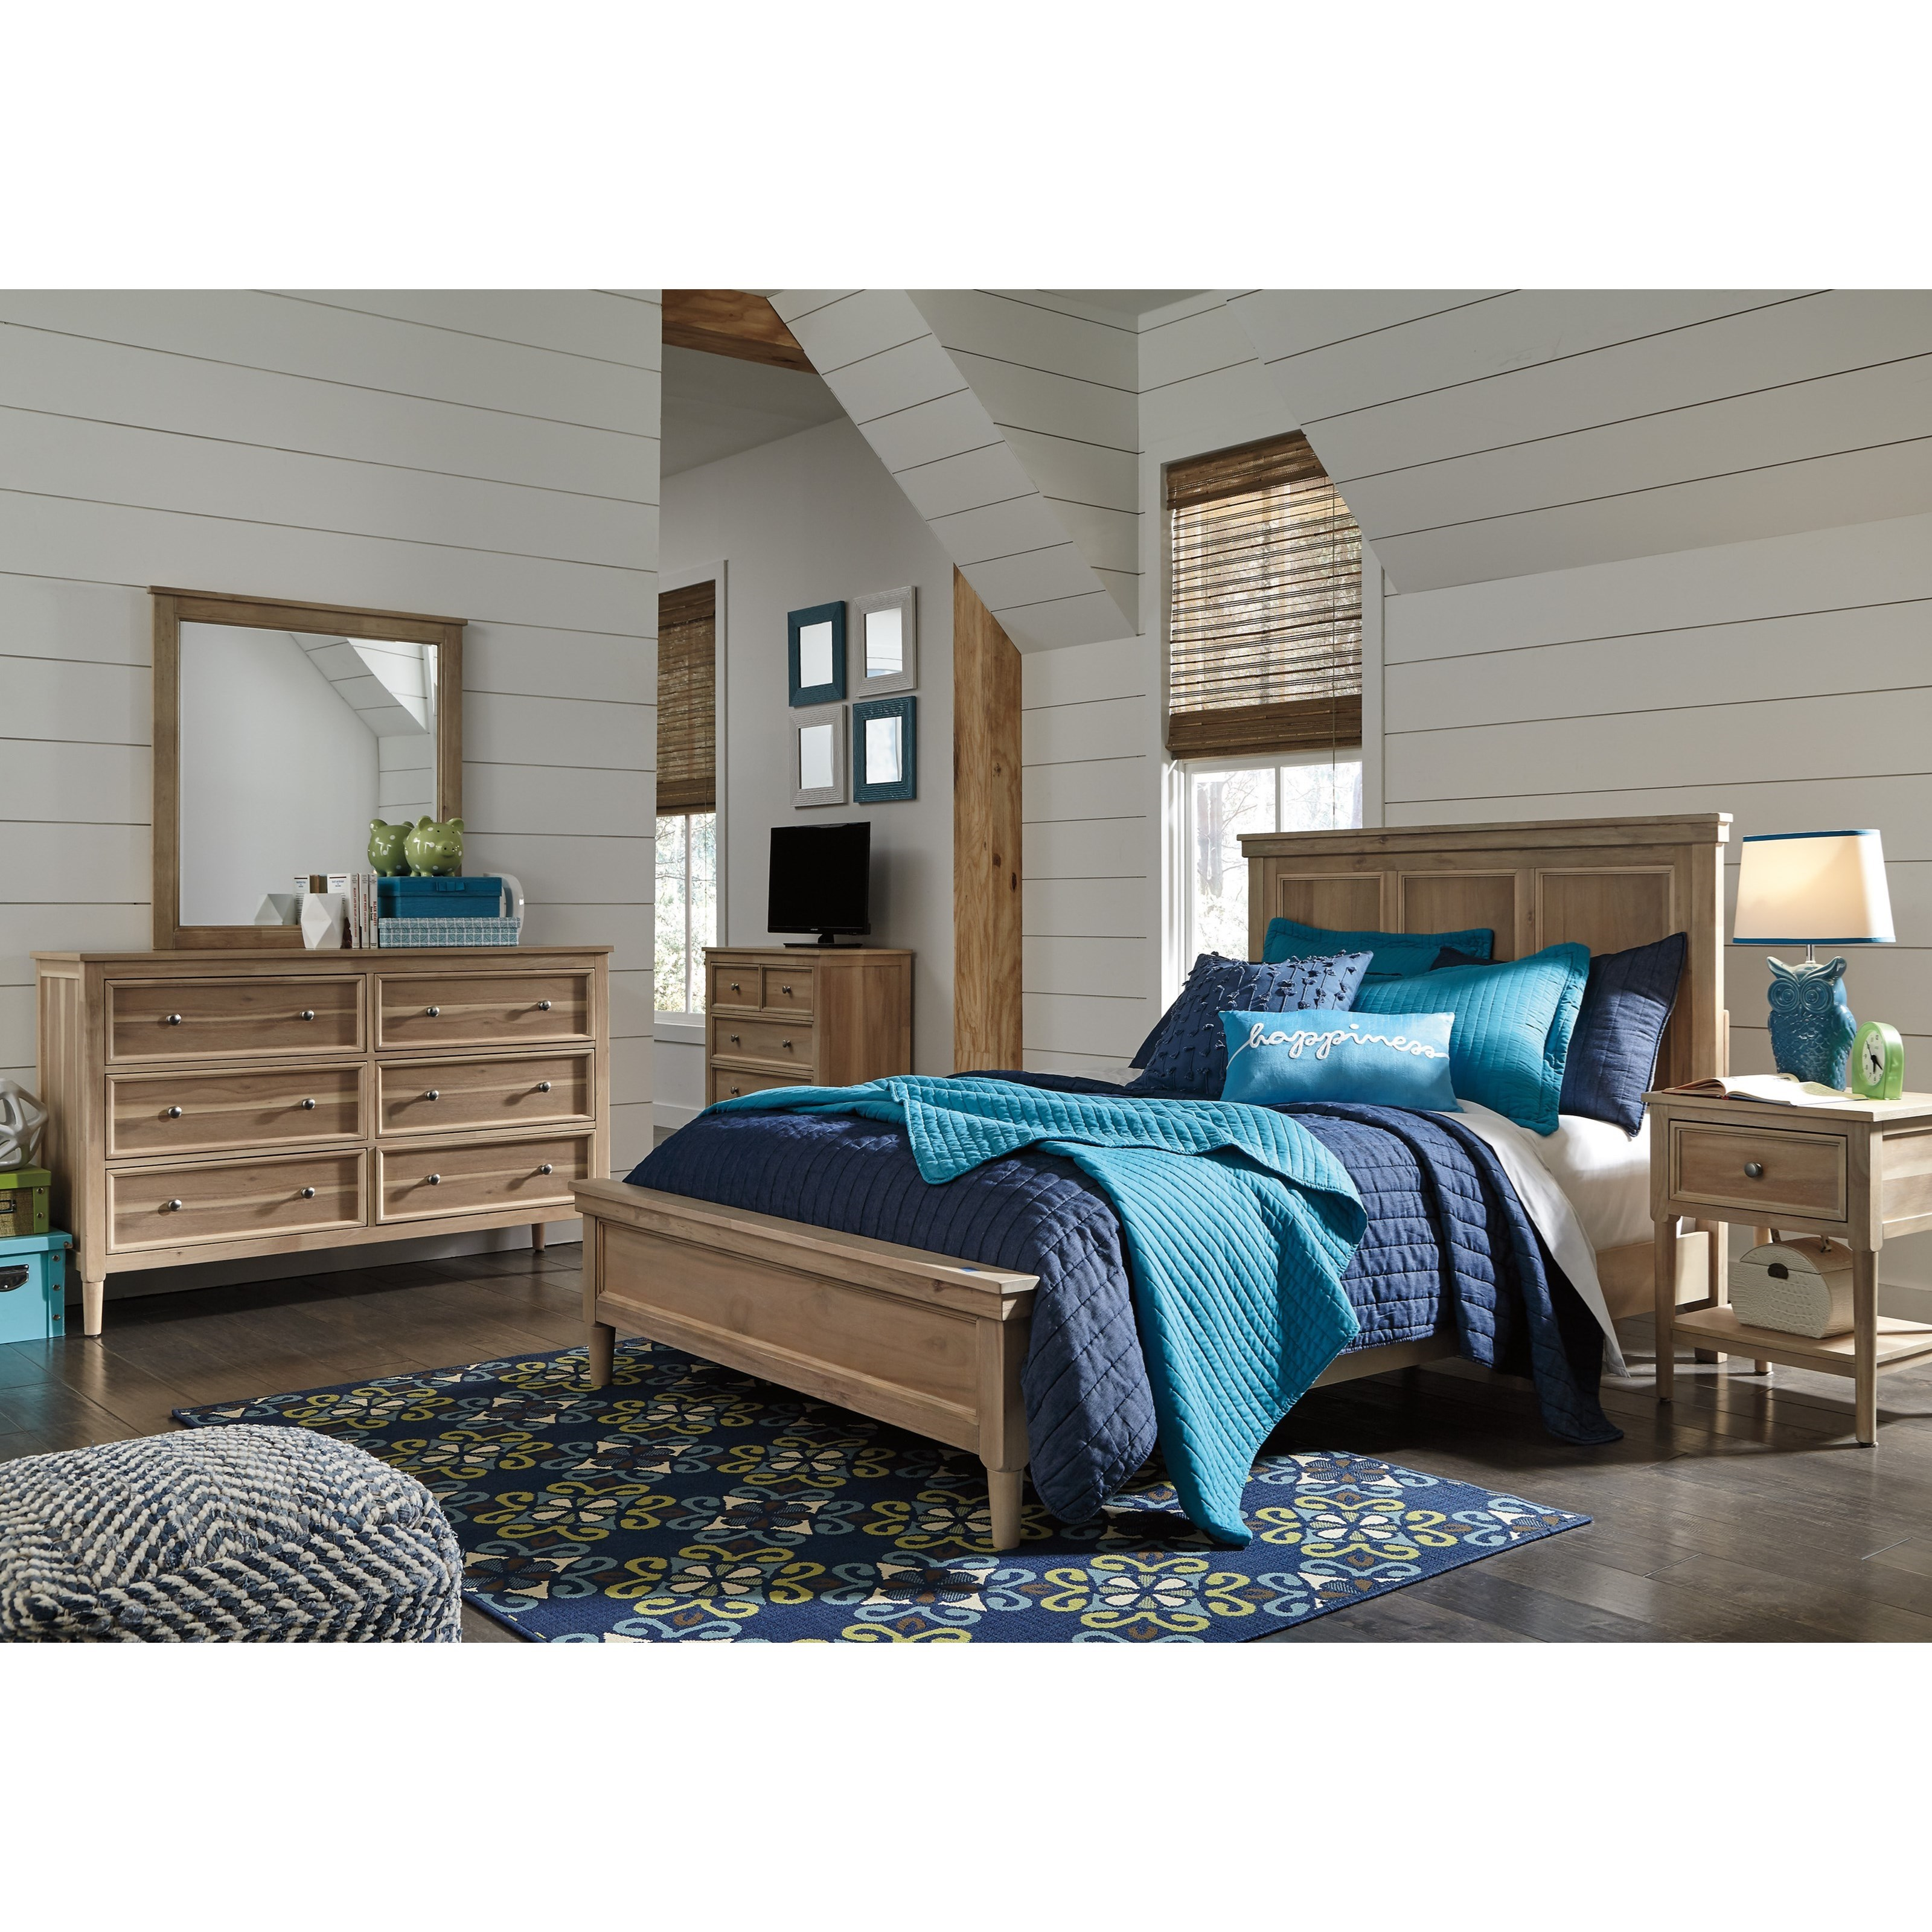 Signature Design by Ashley Klasholm Twin Bedroom Group - Item Number: B512 T Bedroom Group 2